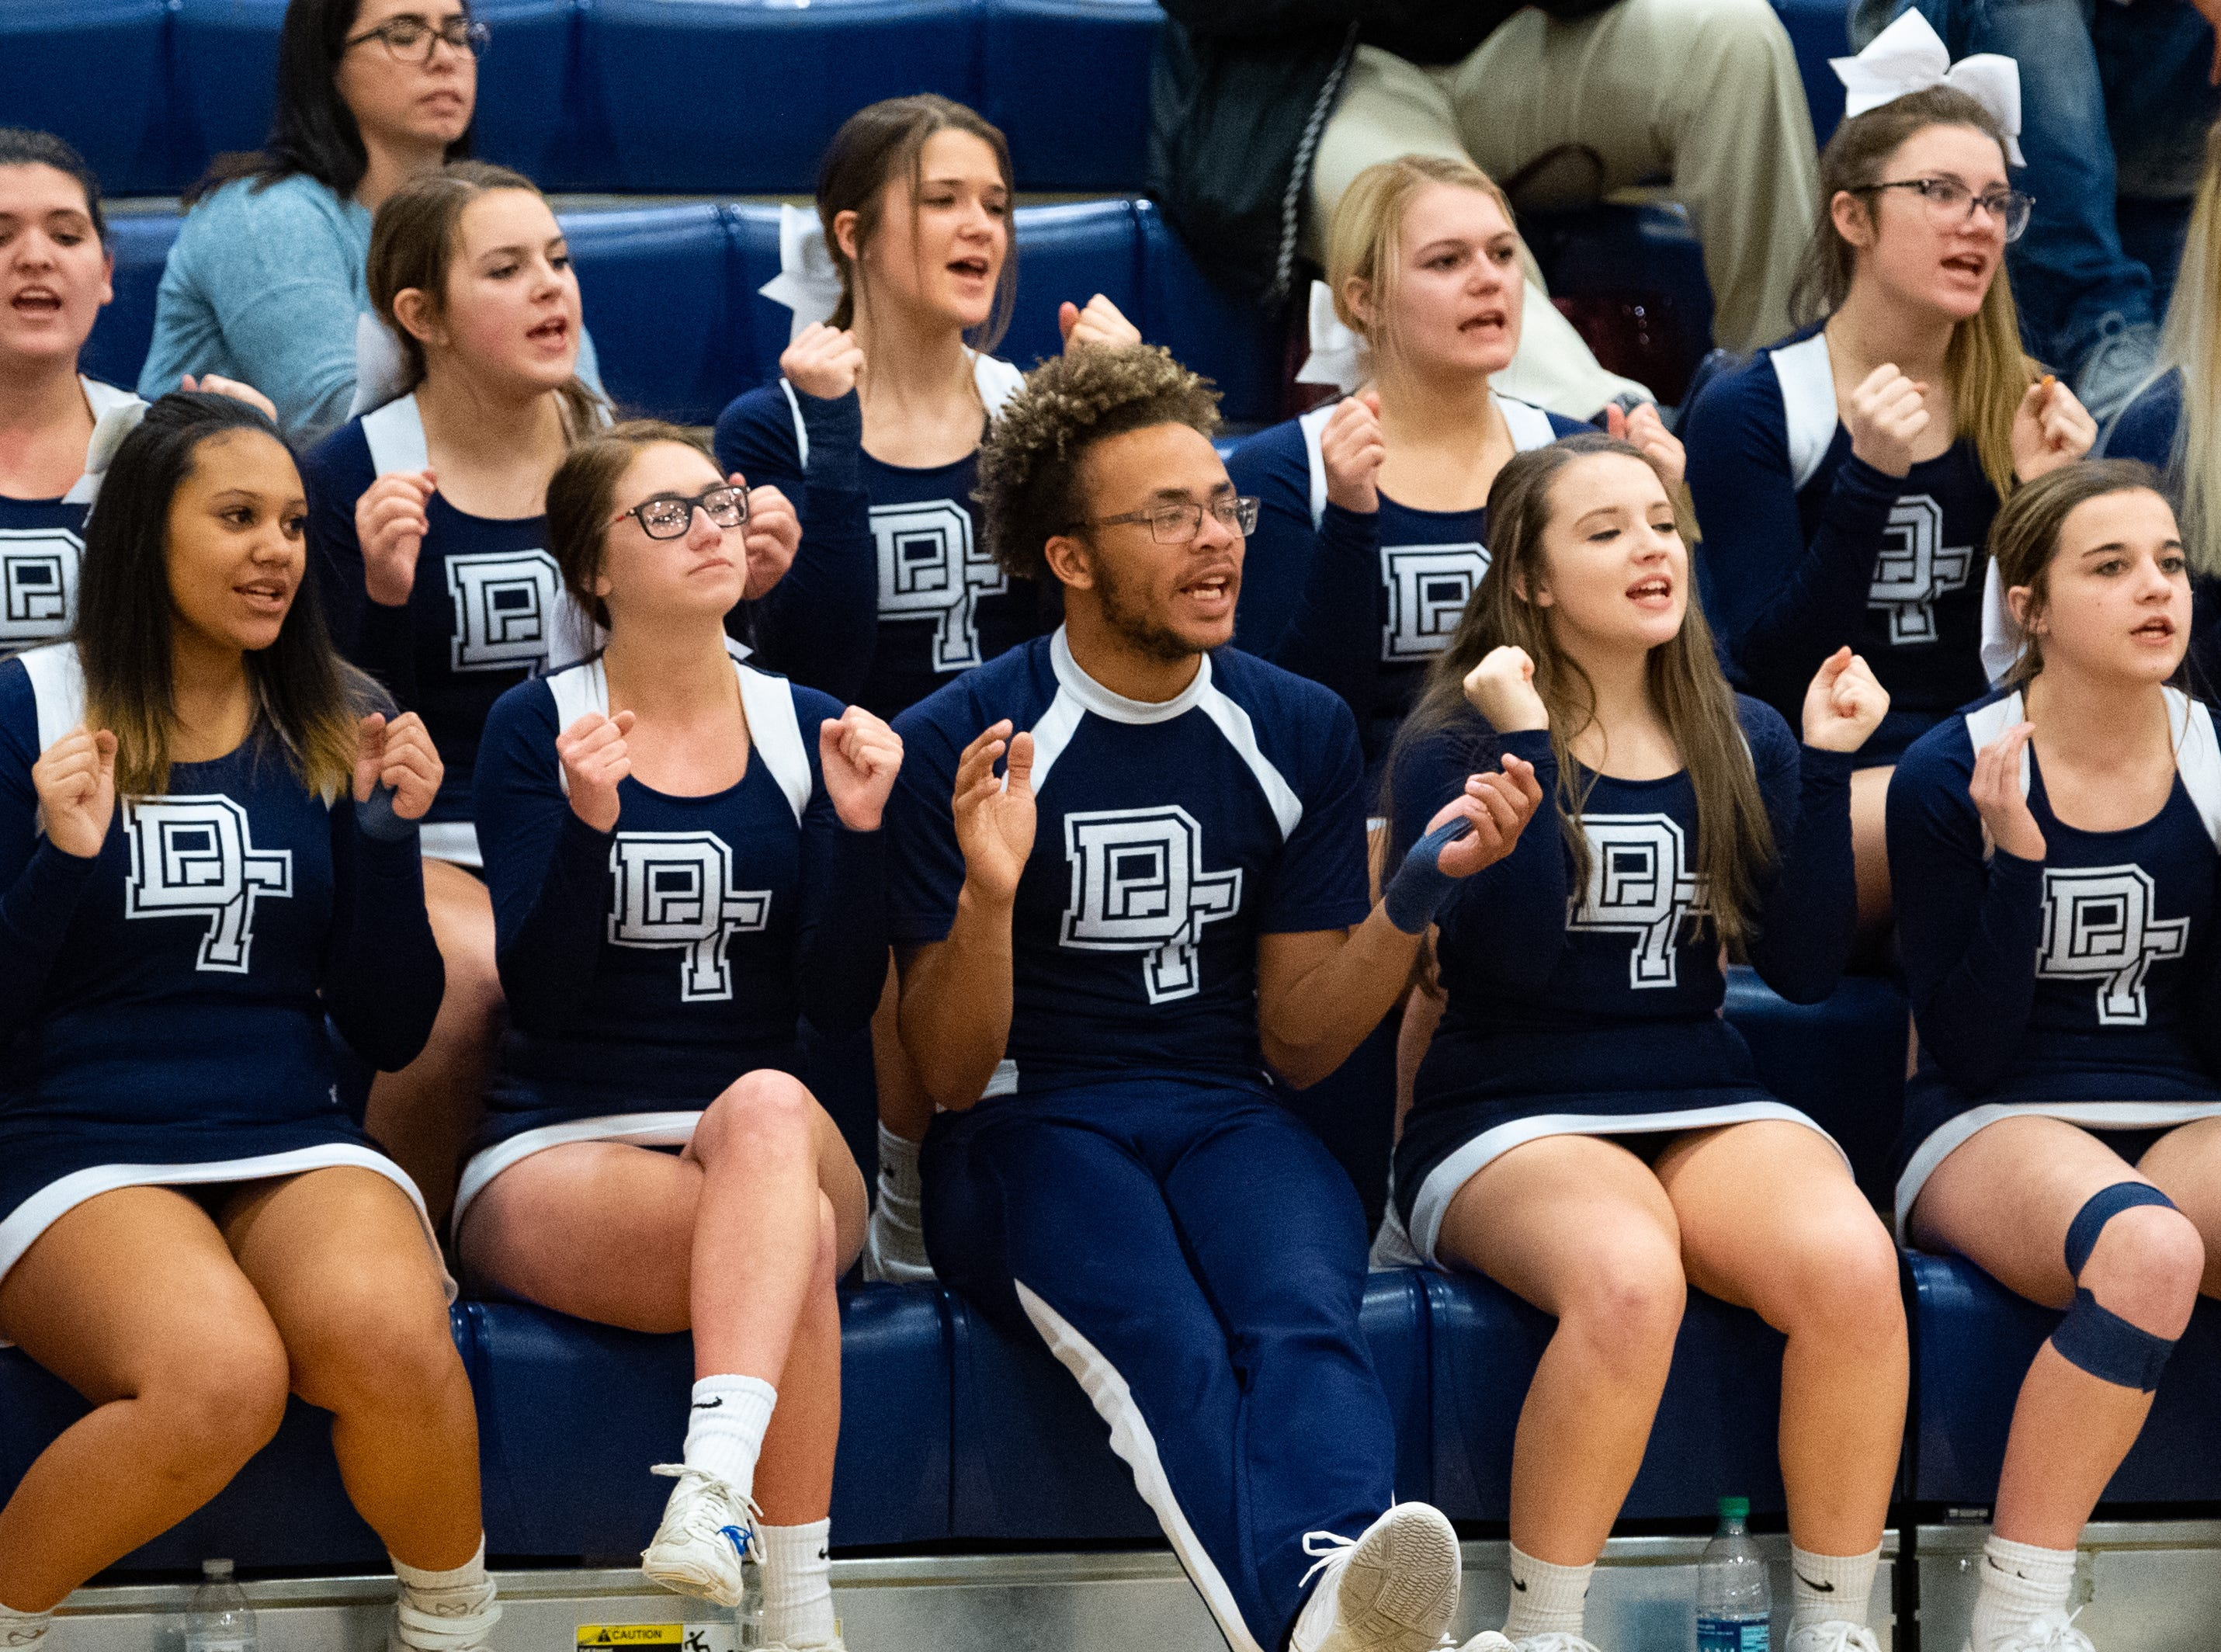 Dallastown cheerleaders are loud and proud during the PIAA first round girls' basketball game between Dallastown and Downingtown East Friday, March 8, 2019 at West York Area High School. The Wildcats defeated the Cougars 43 to 39.